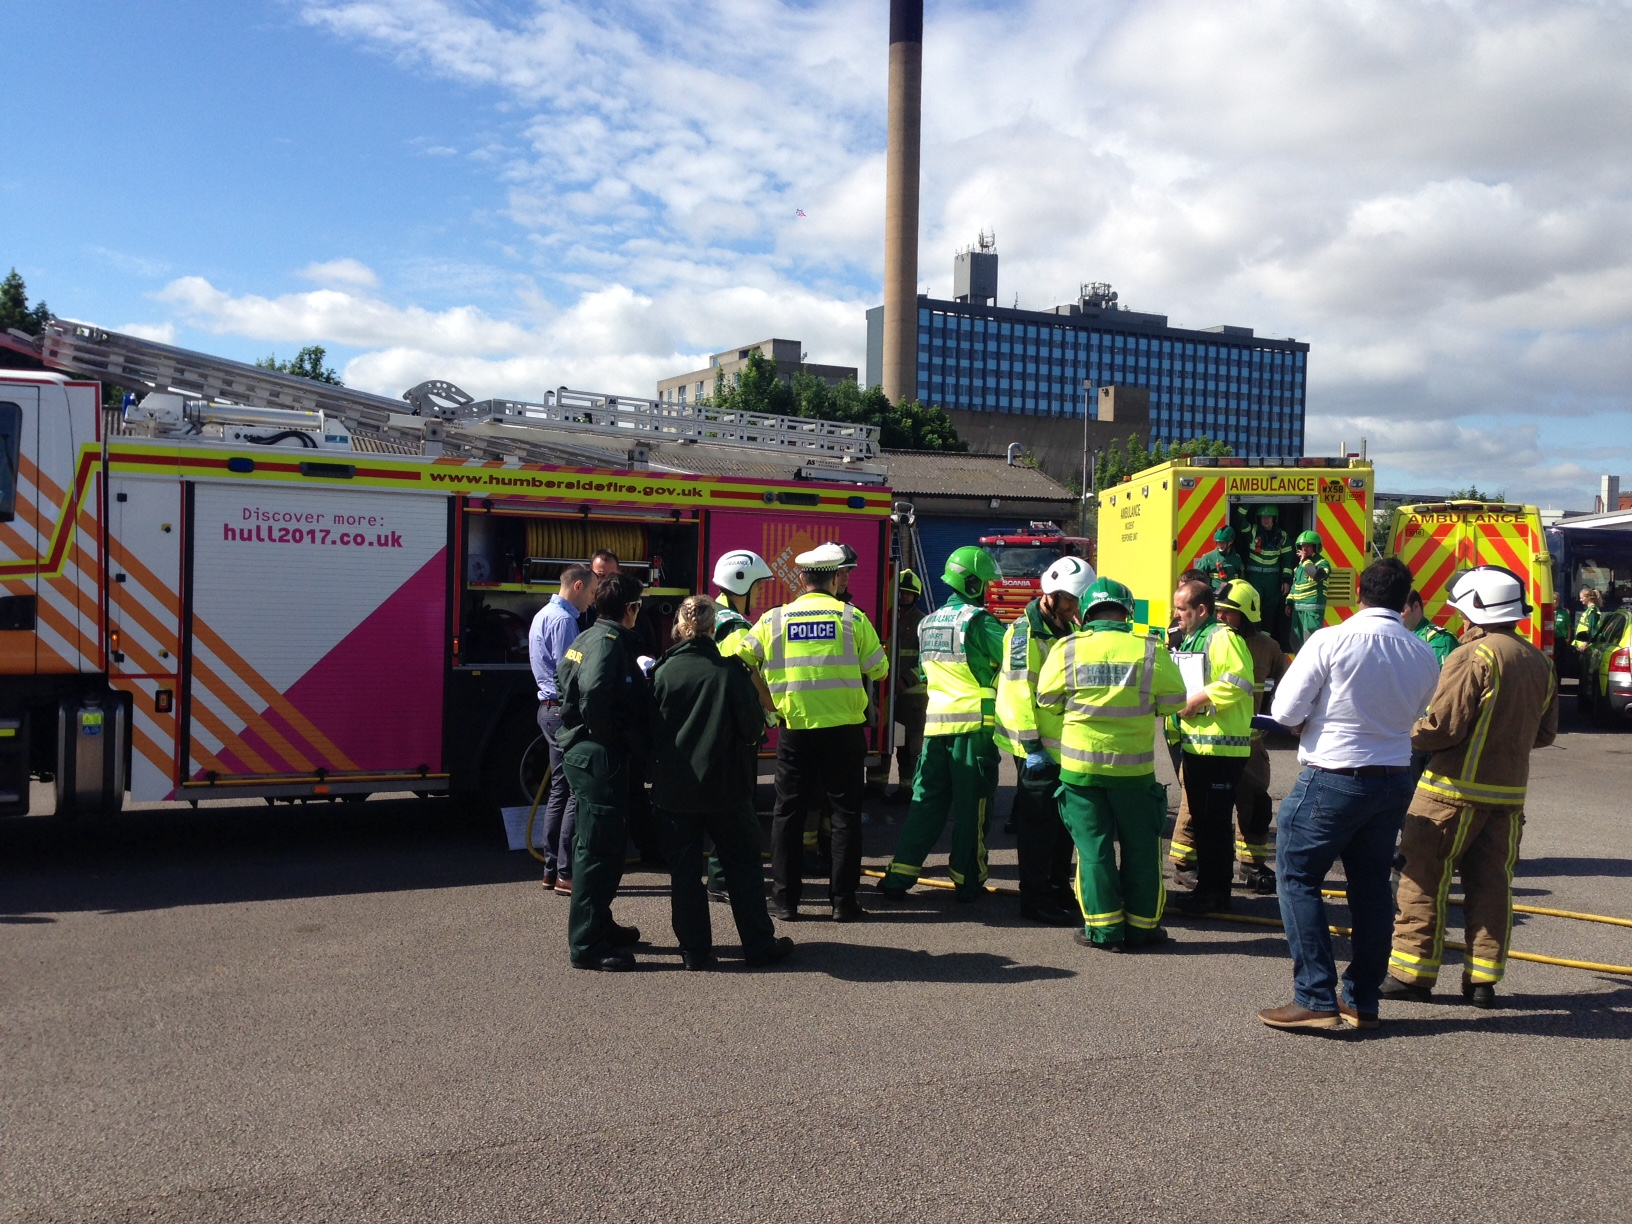 Hull University Teaching Hospitals NHS TrustNewsEmergency services to practise major incident response